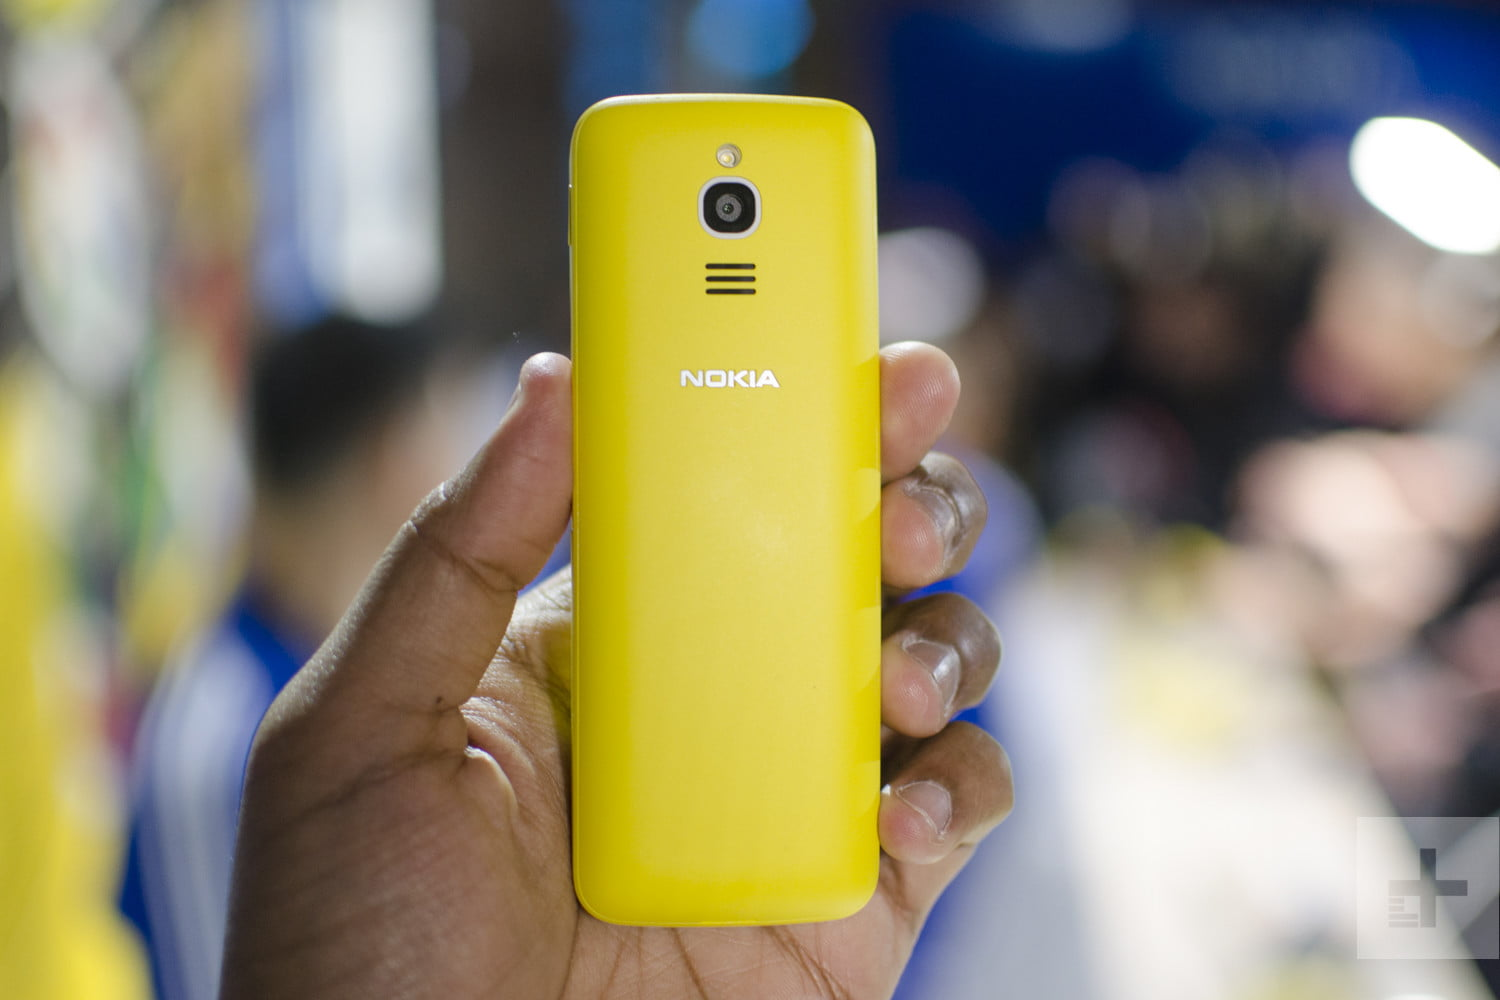 Nokia 8110 4G Hands-on Review | Digital Trends